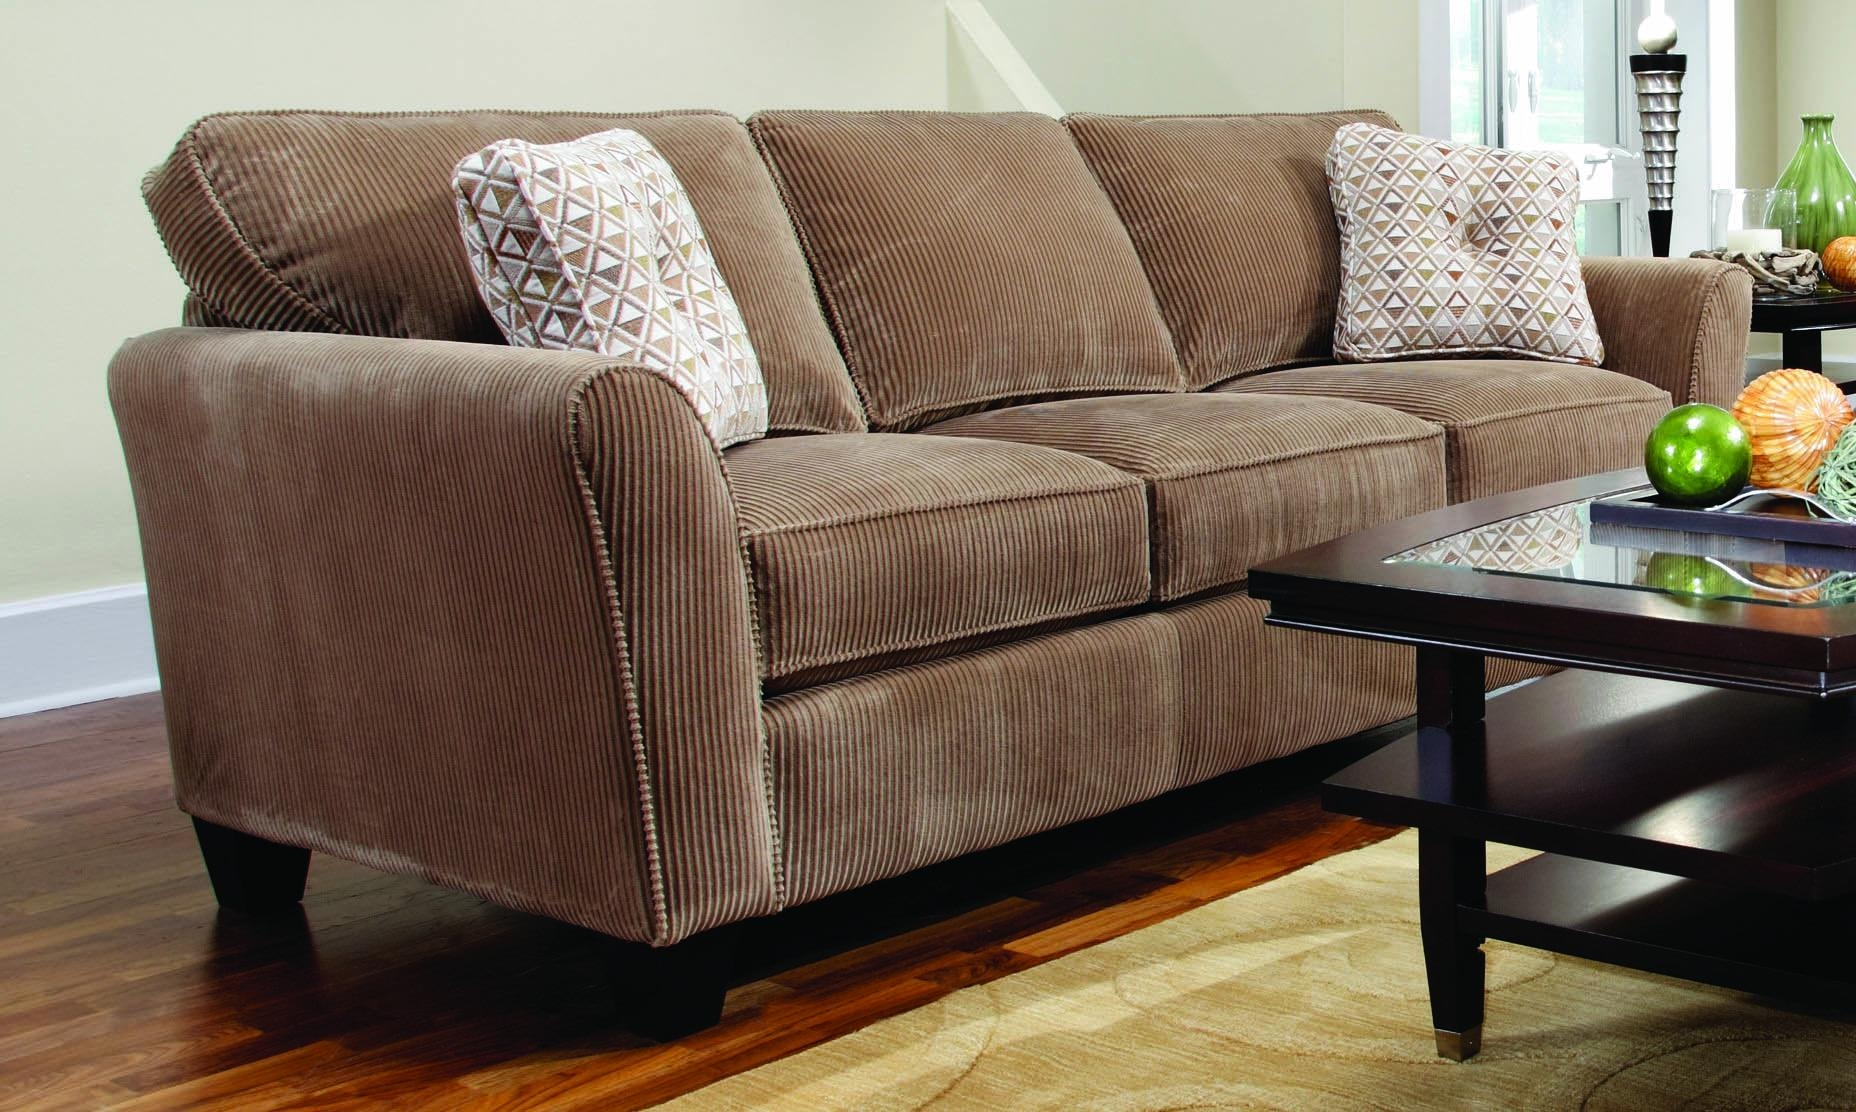 20 Photos Broyhill Sofas Sofa Ideas